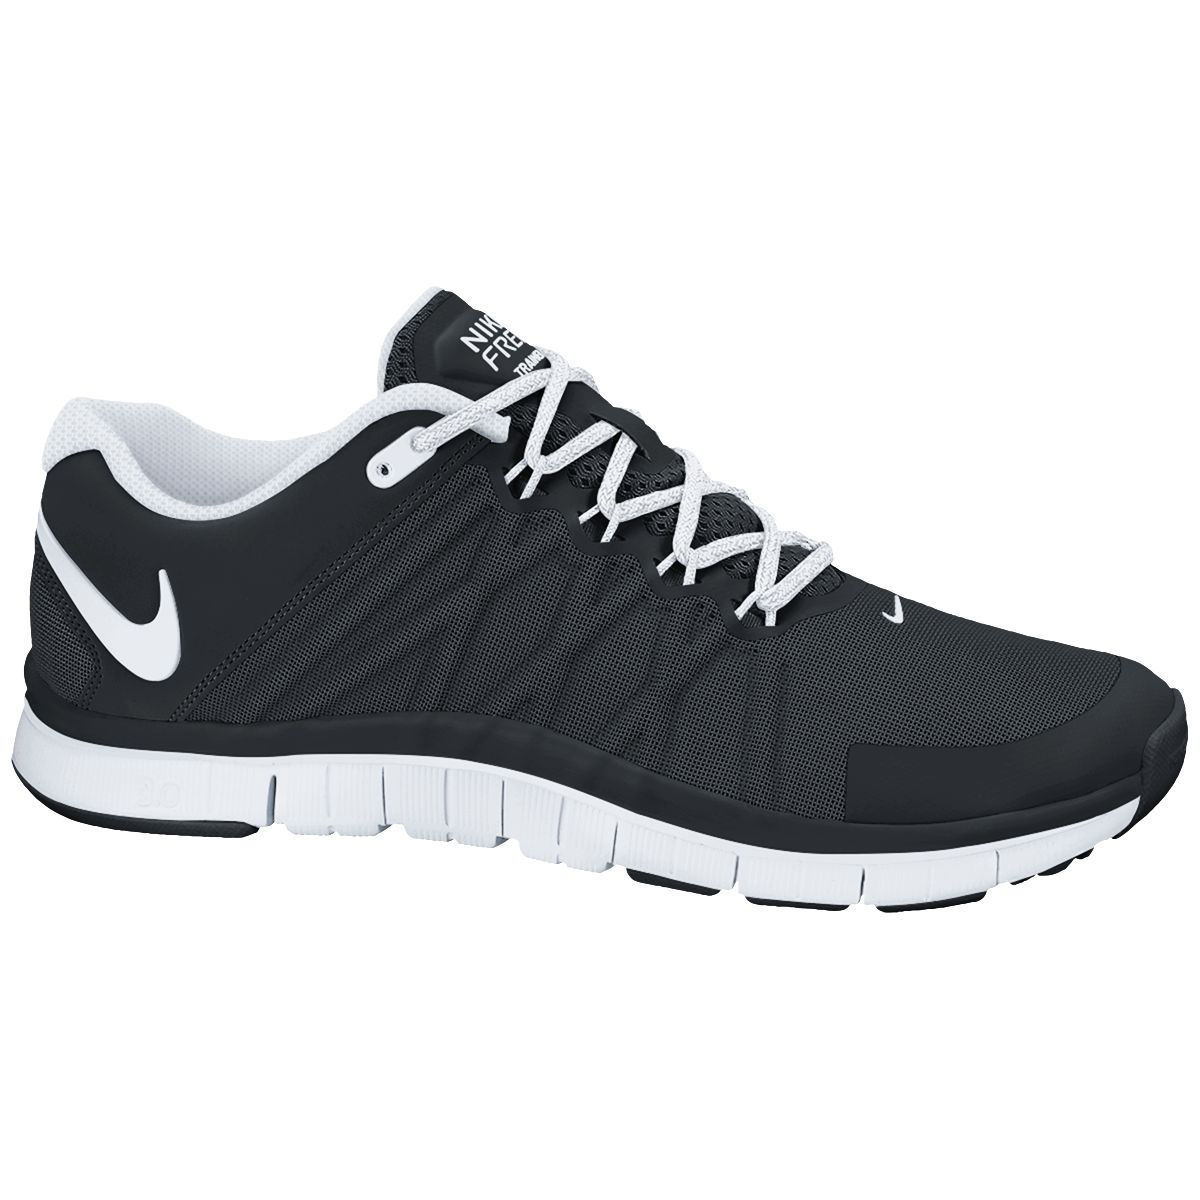 Best Quality For Nike Free 3.0 V3 Women,100% Authentic